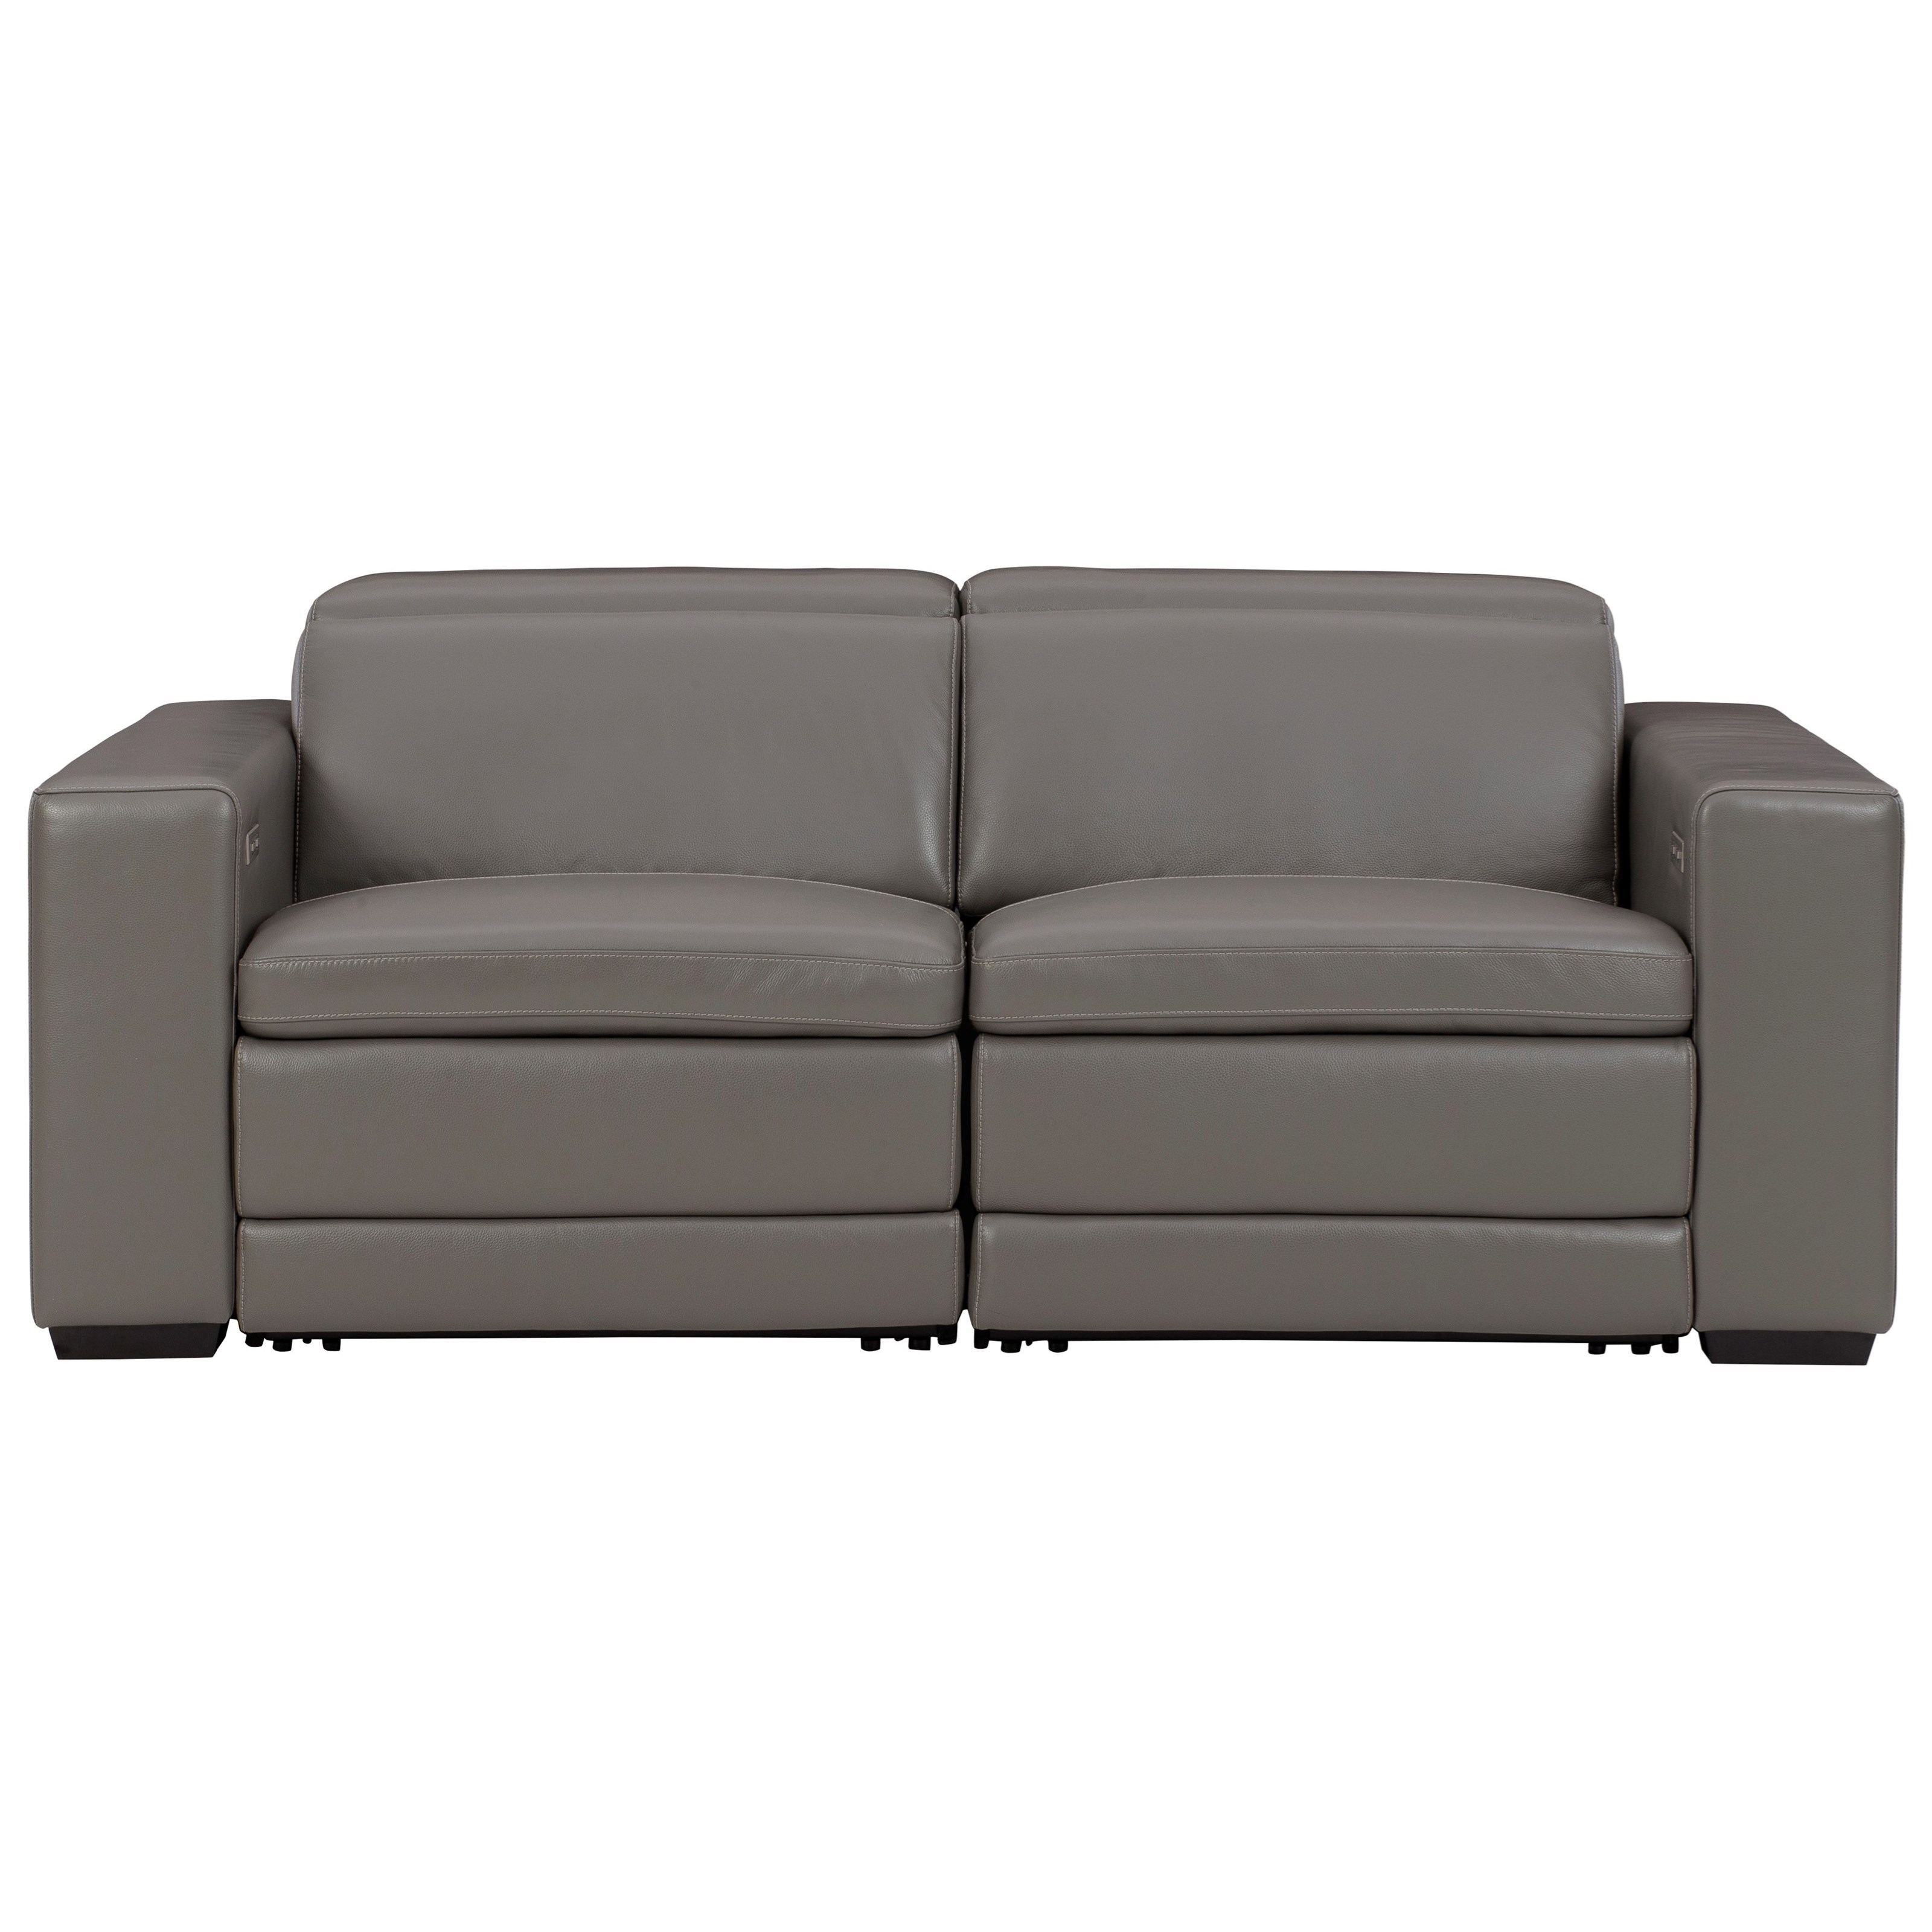 Texline Reclining Loveseat by Signature Design by Ashley at Sparks HomeStore